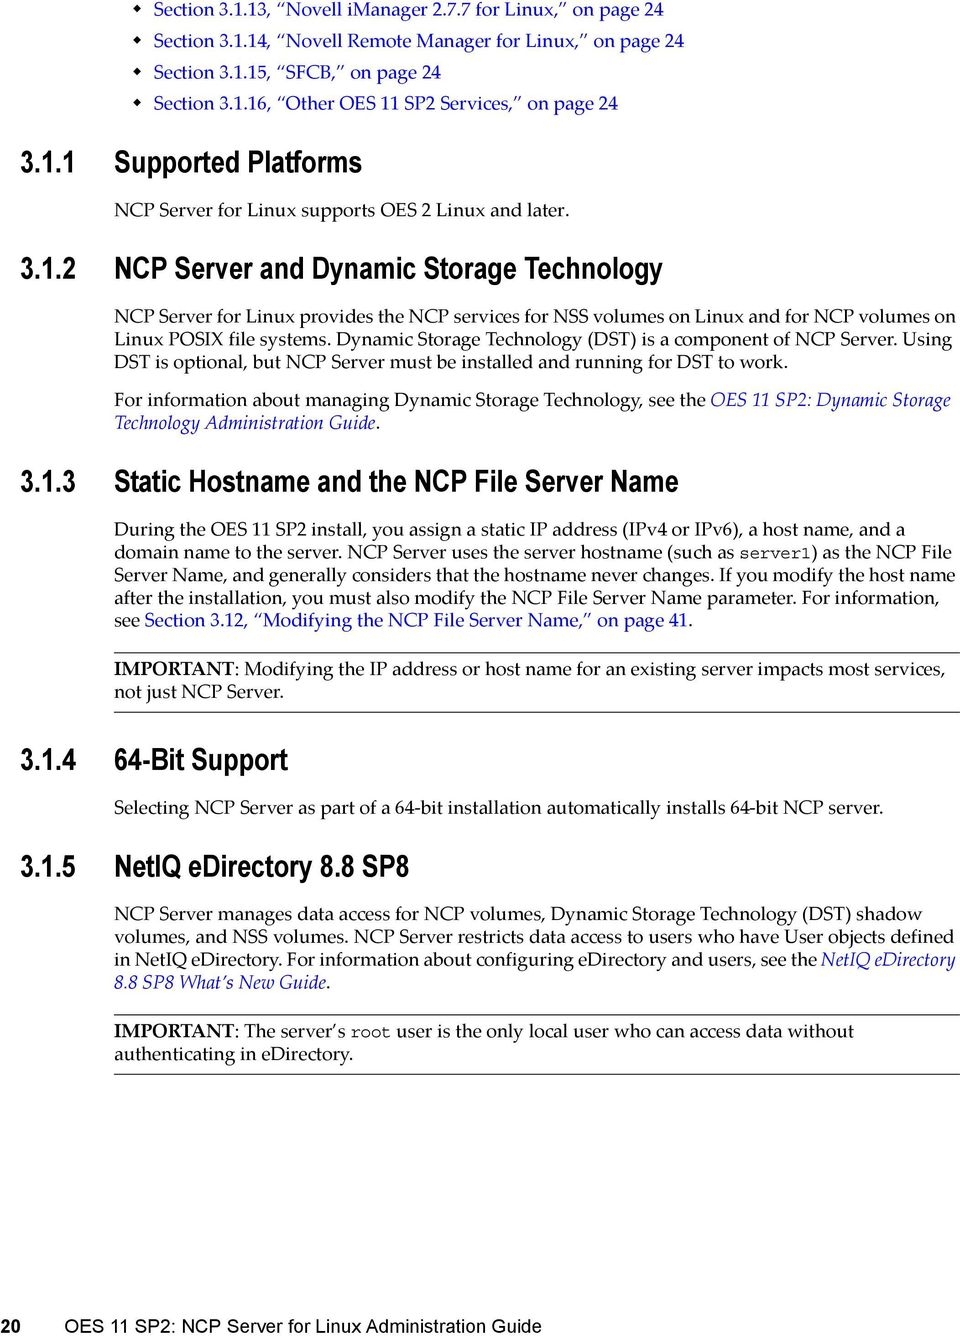 Dynamic Storage Technology (DST) is a component of NCP Server. Using DST is optional, but NCP Server must be installed and running for DST to work.